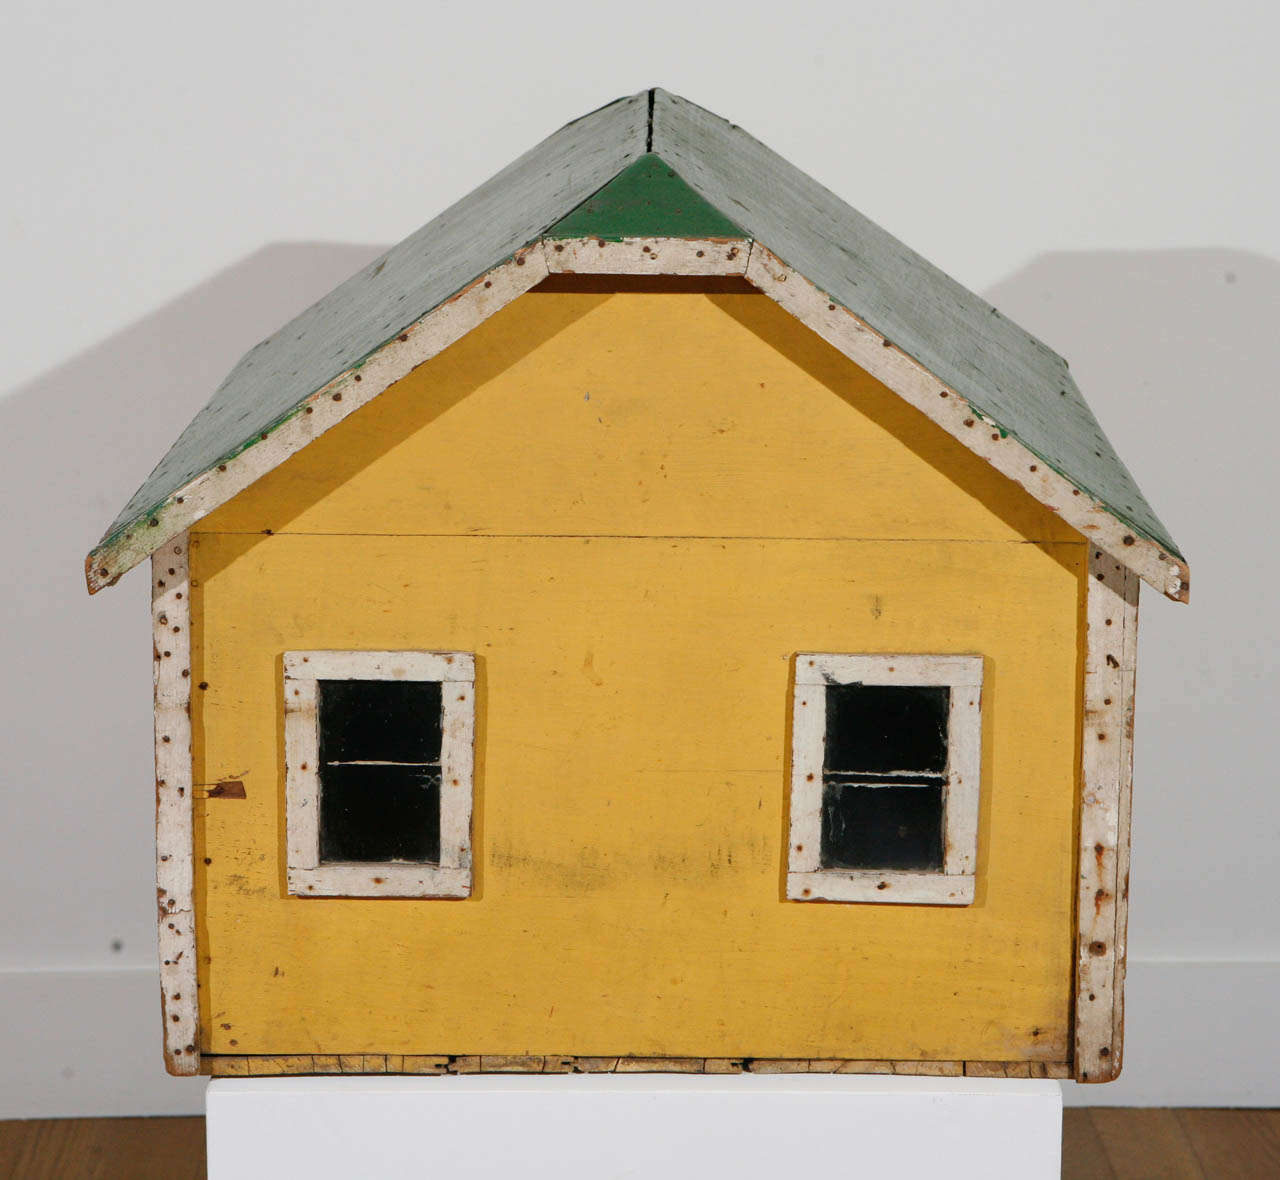 Paint Early 20th Century, Model Barn or Garage, circa 1910-1930 For Sale